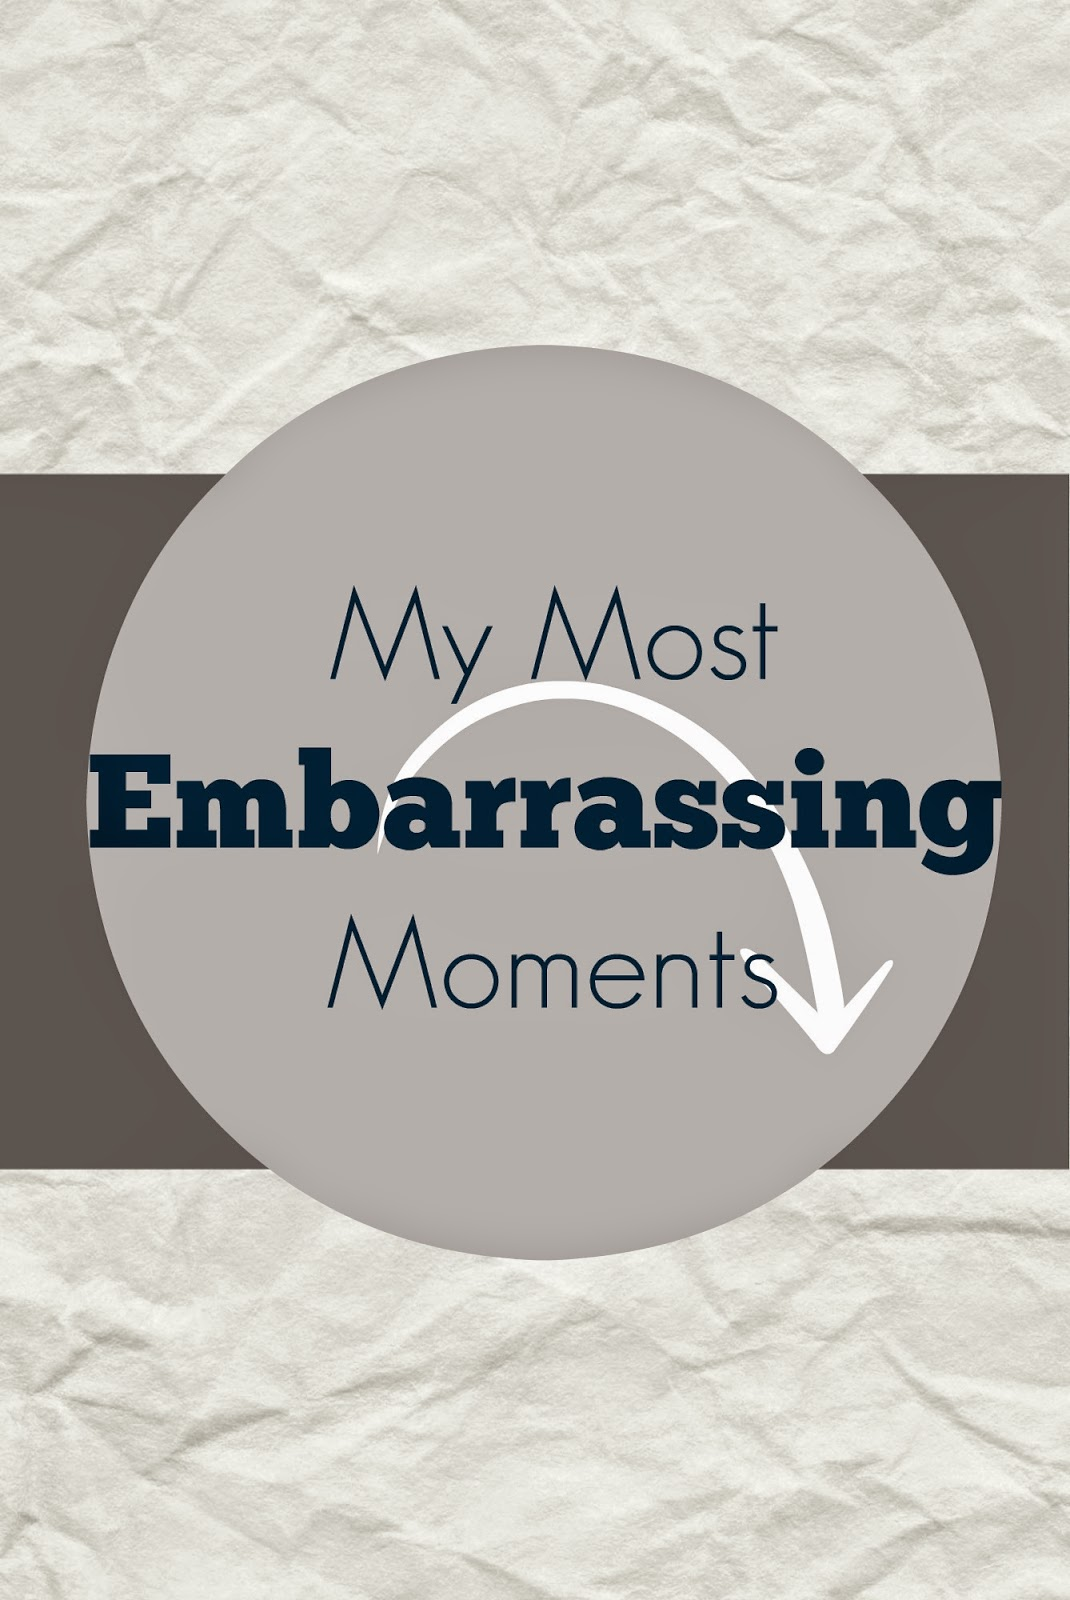 My most embarrassing moments